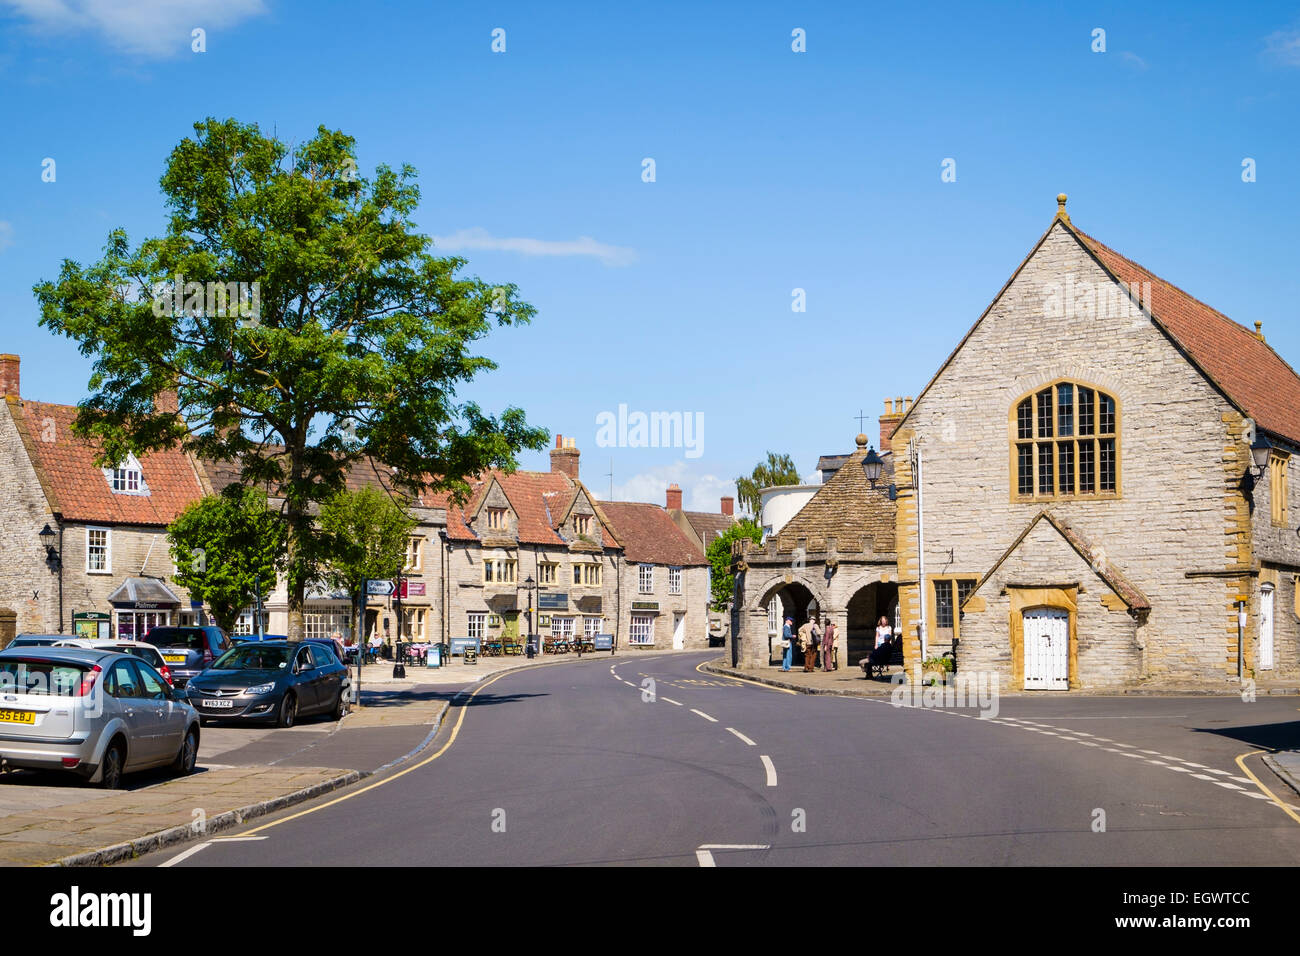 Somerton, a beautiful old small market town in Somerset, England, UK - Stock Image